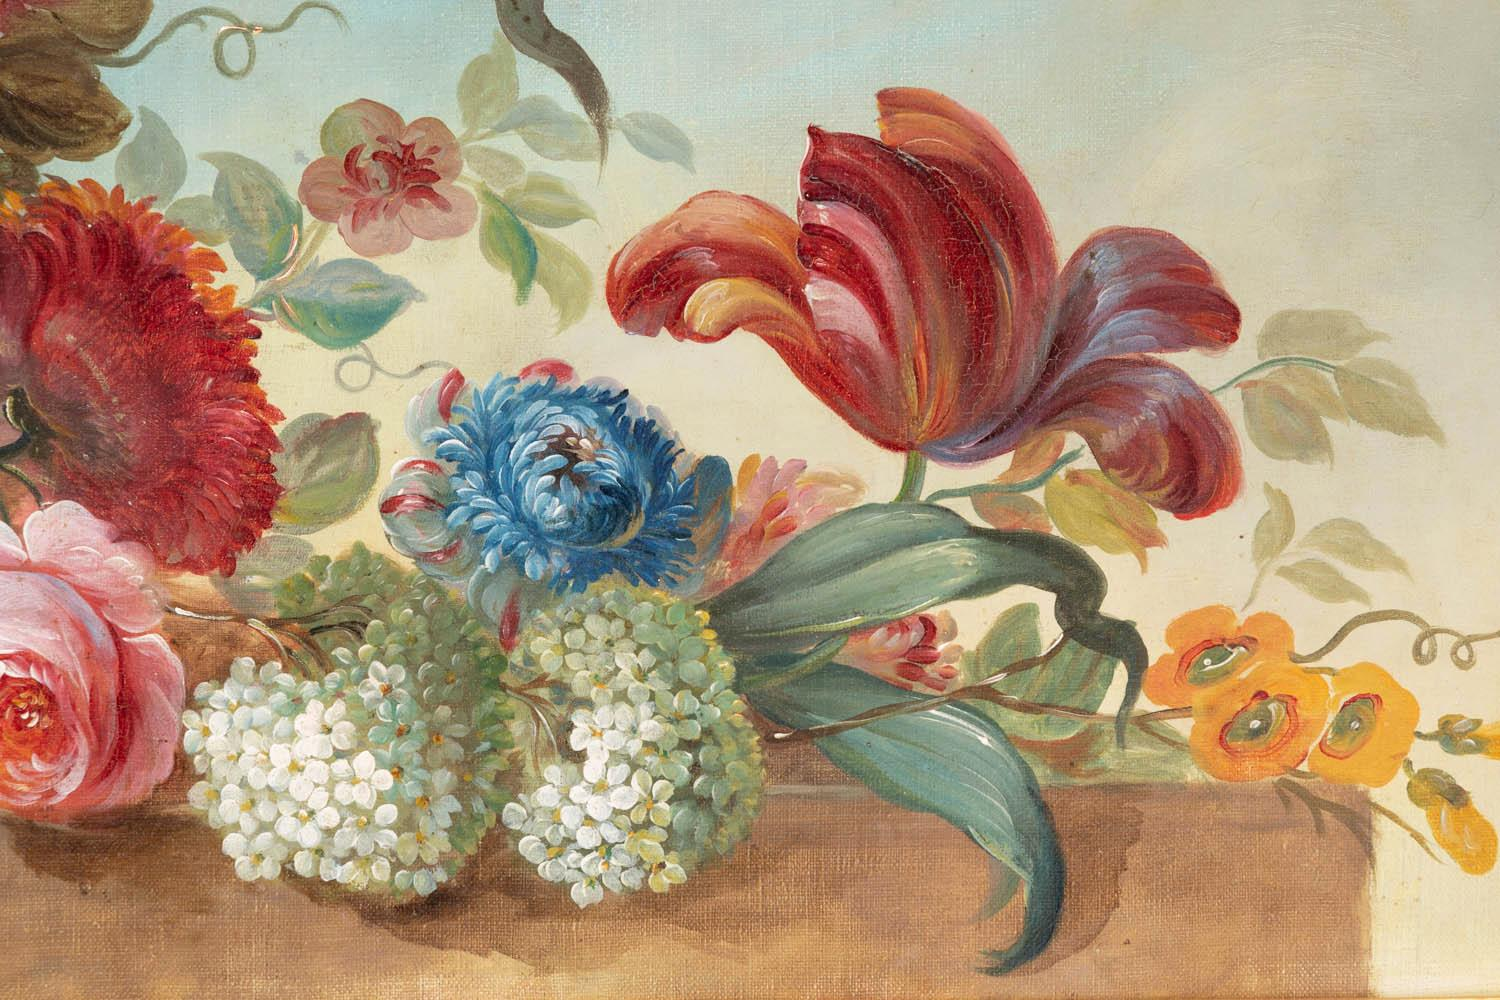 Pair of Oil on Canvas Figuring Flowers in Vases circa 1900 For Sale 5 & Pair of Oil on Canvas Figuring Flowers in Vases circa 1900 For Sale ...